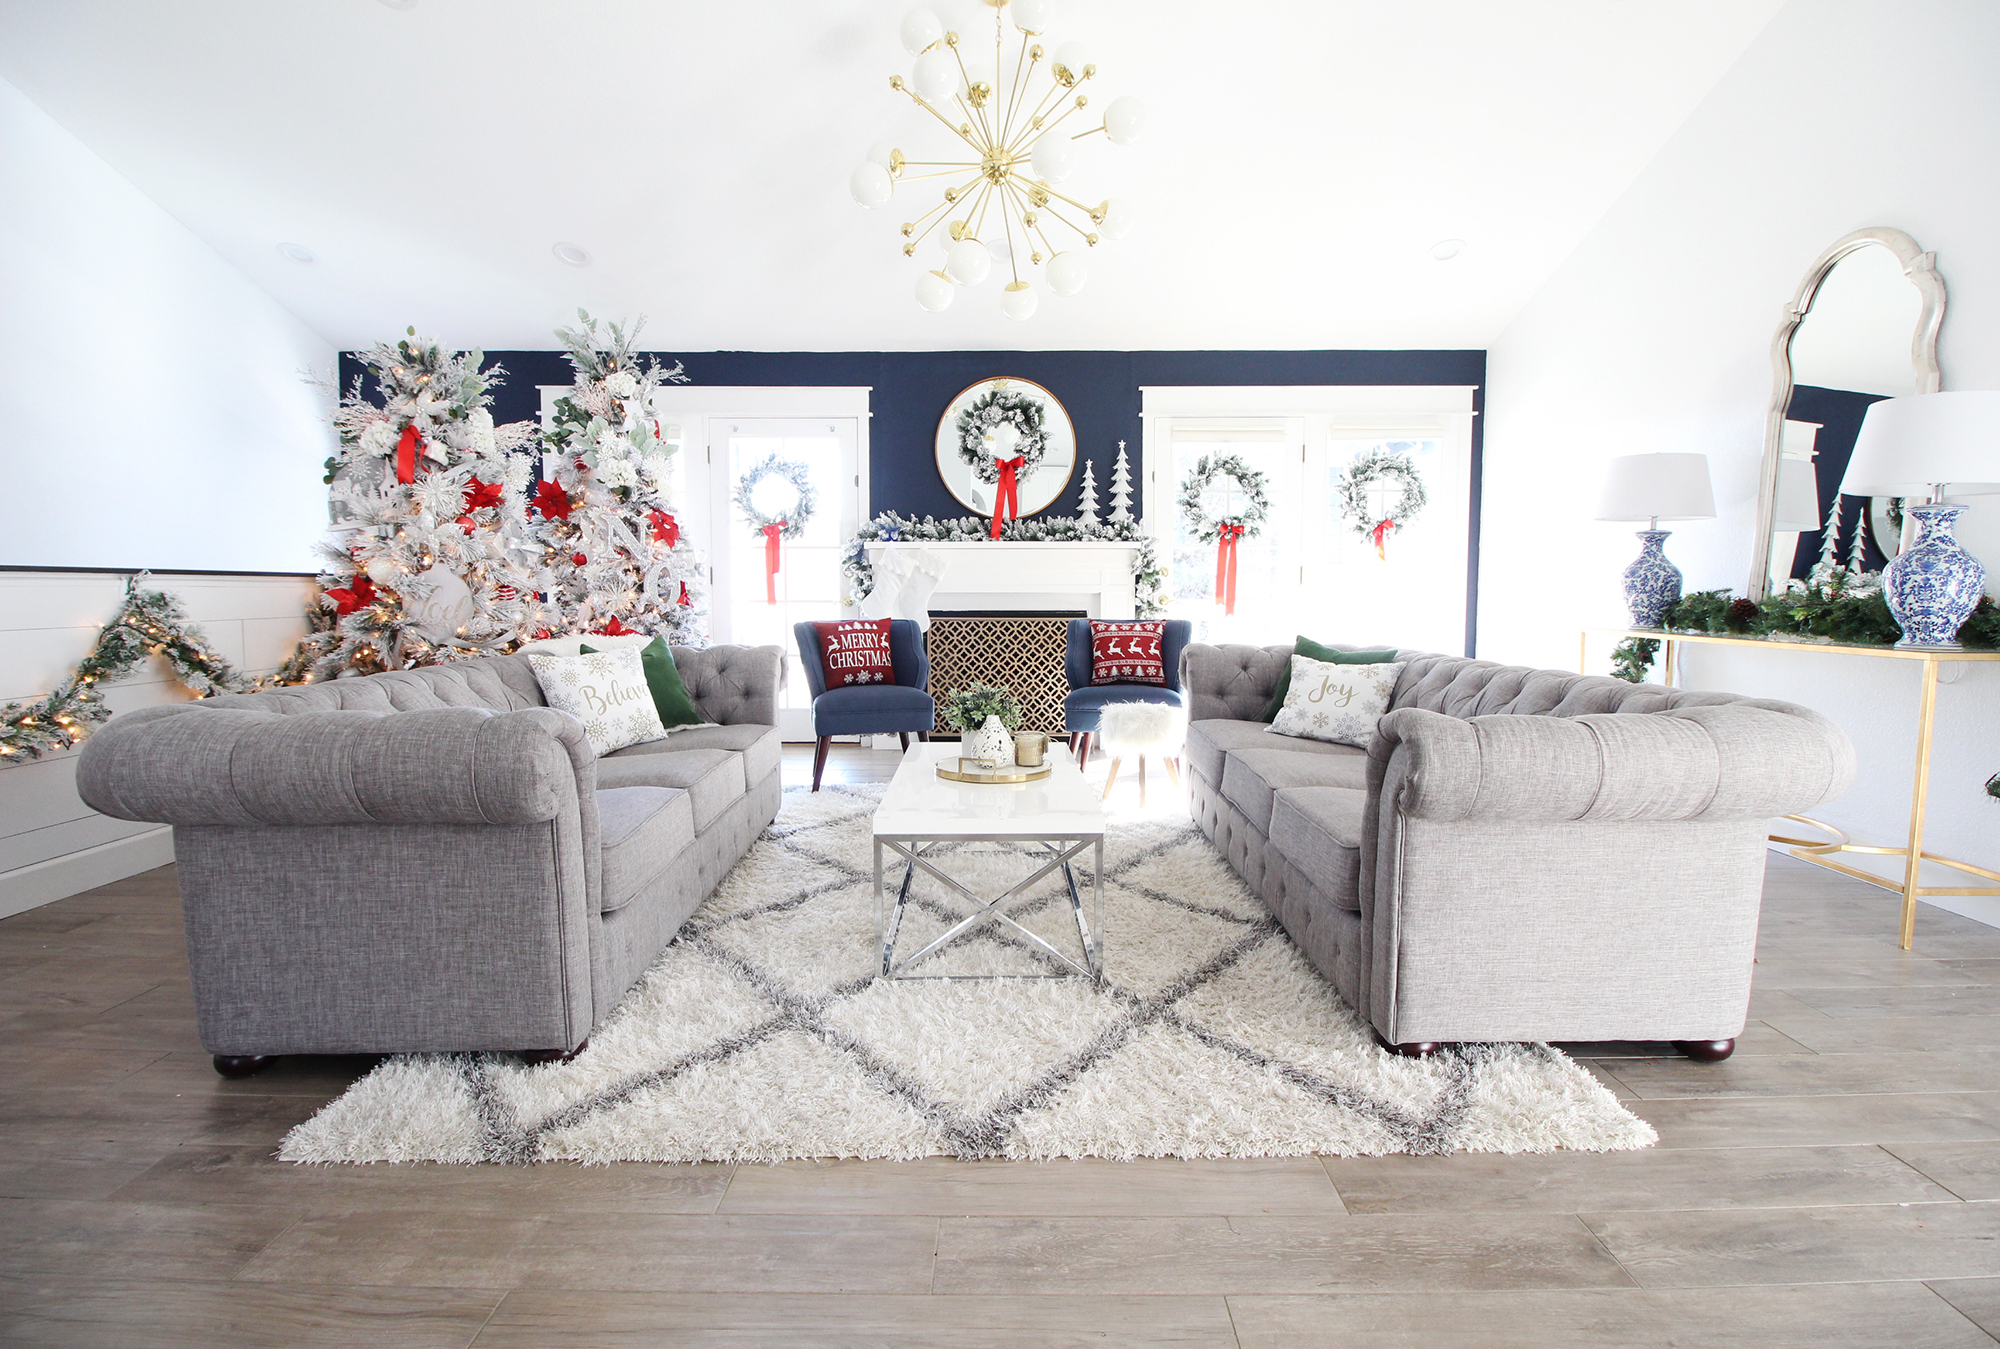 Decorating Your Home For The Holidays: Holiday Decor - Classy Clutter